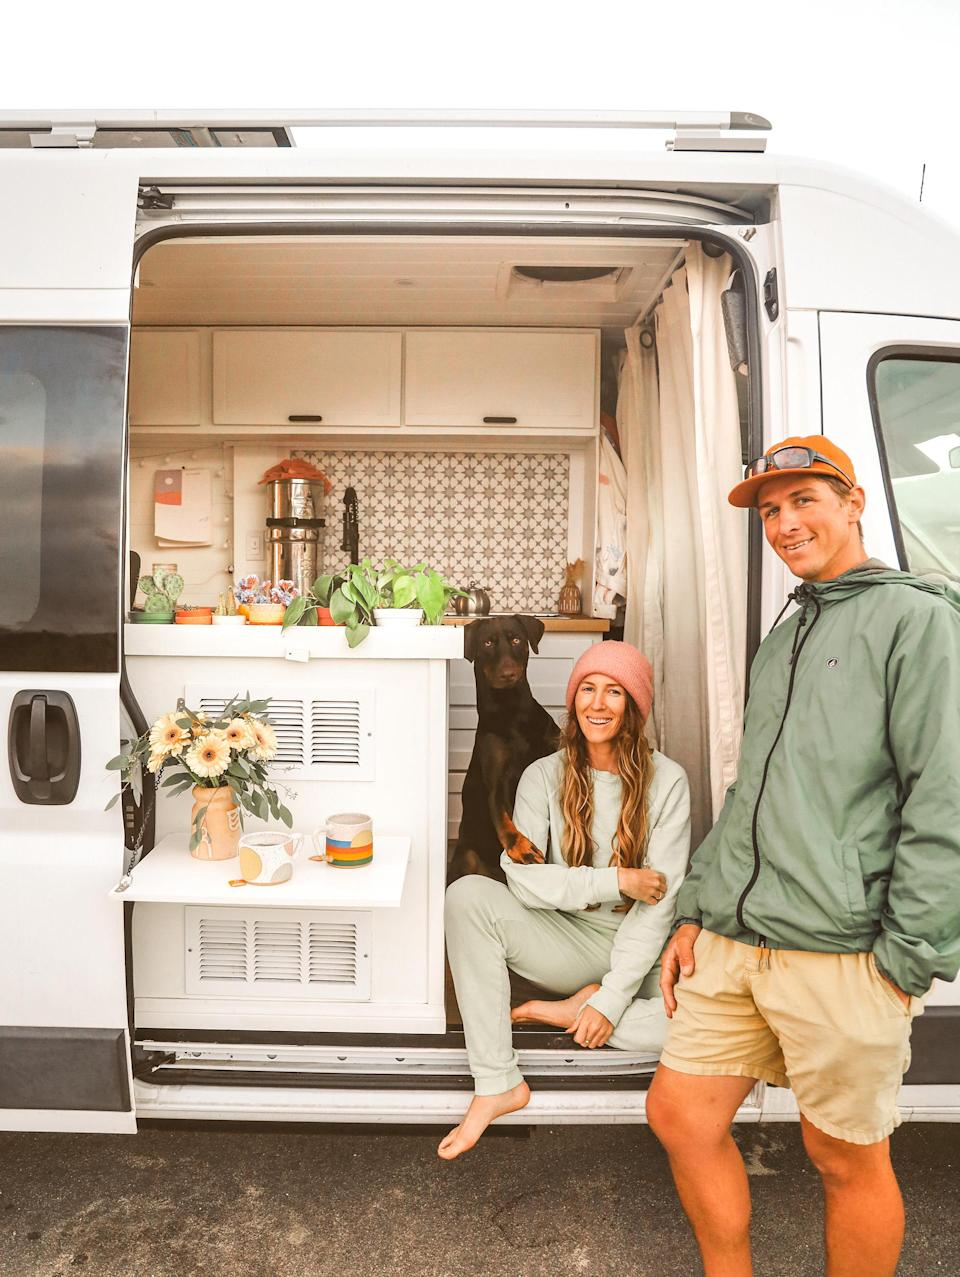 TikTok stars Courtnie Hamel and Nate Cotton (@courtandnate) have amassed 1.6 million followers by documenting their van life journey over the past year and a half.